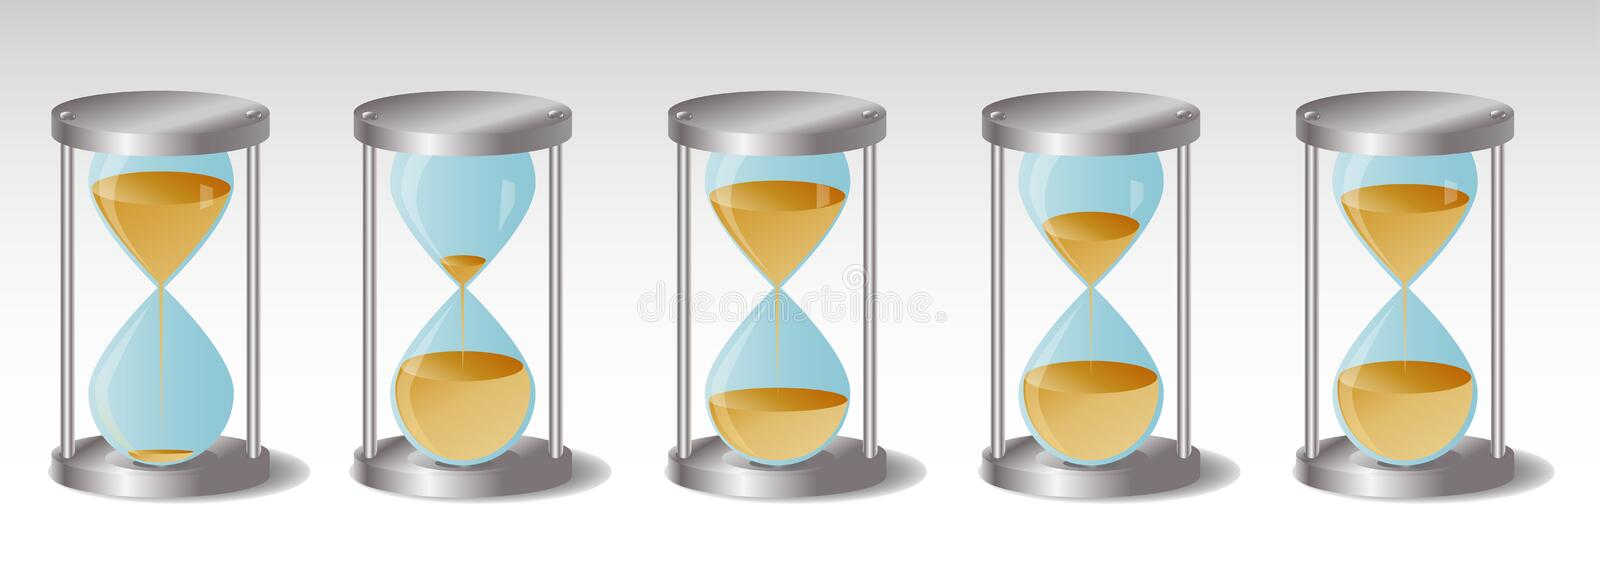 Glass Hourglass with metal hats, five pieces, leaking sand vector illustration